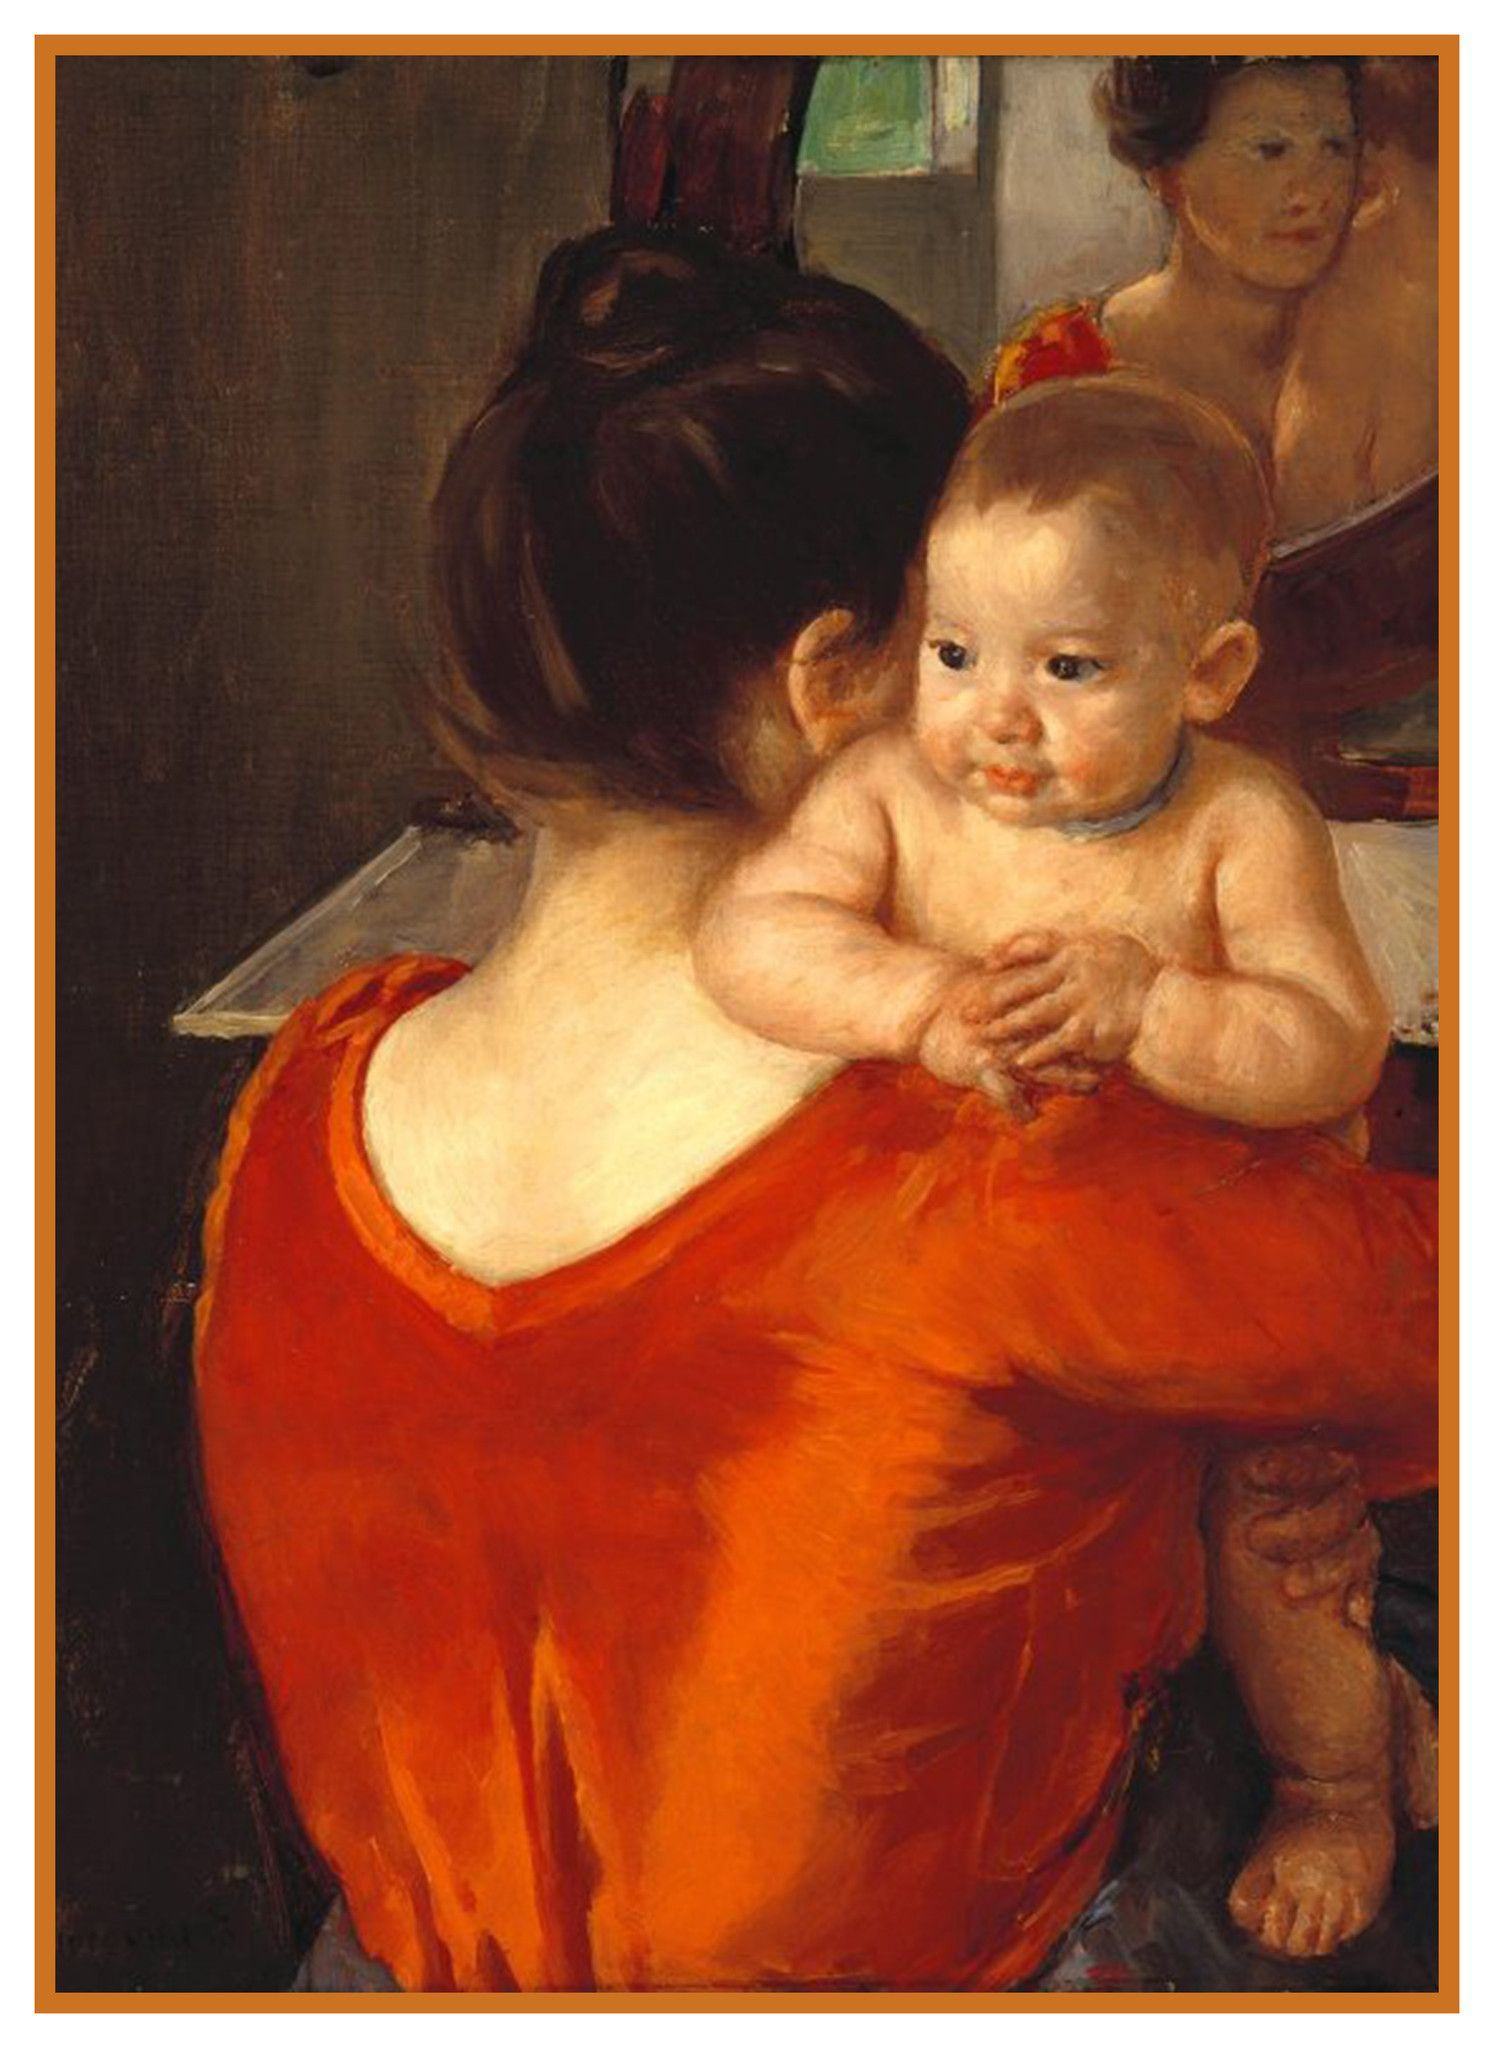 Woman In Red Dress With Baby By American Impressionist Artist Mary Cassatt Counted Cross Stitch Or